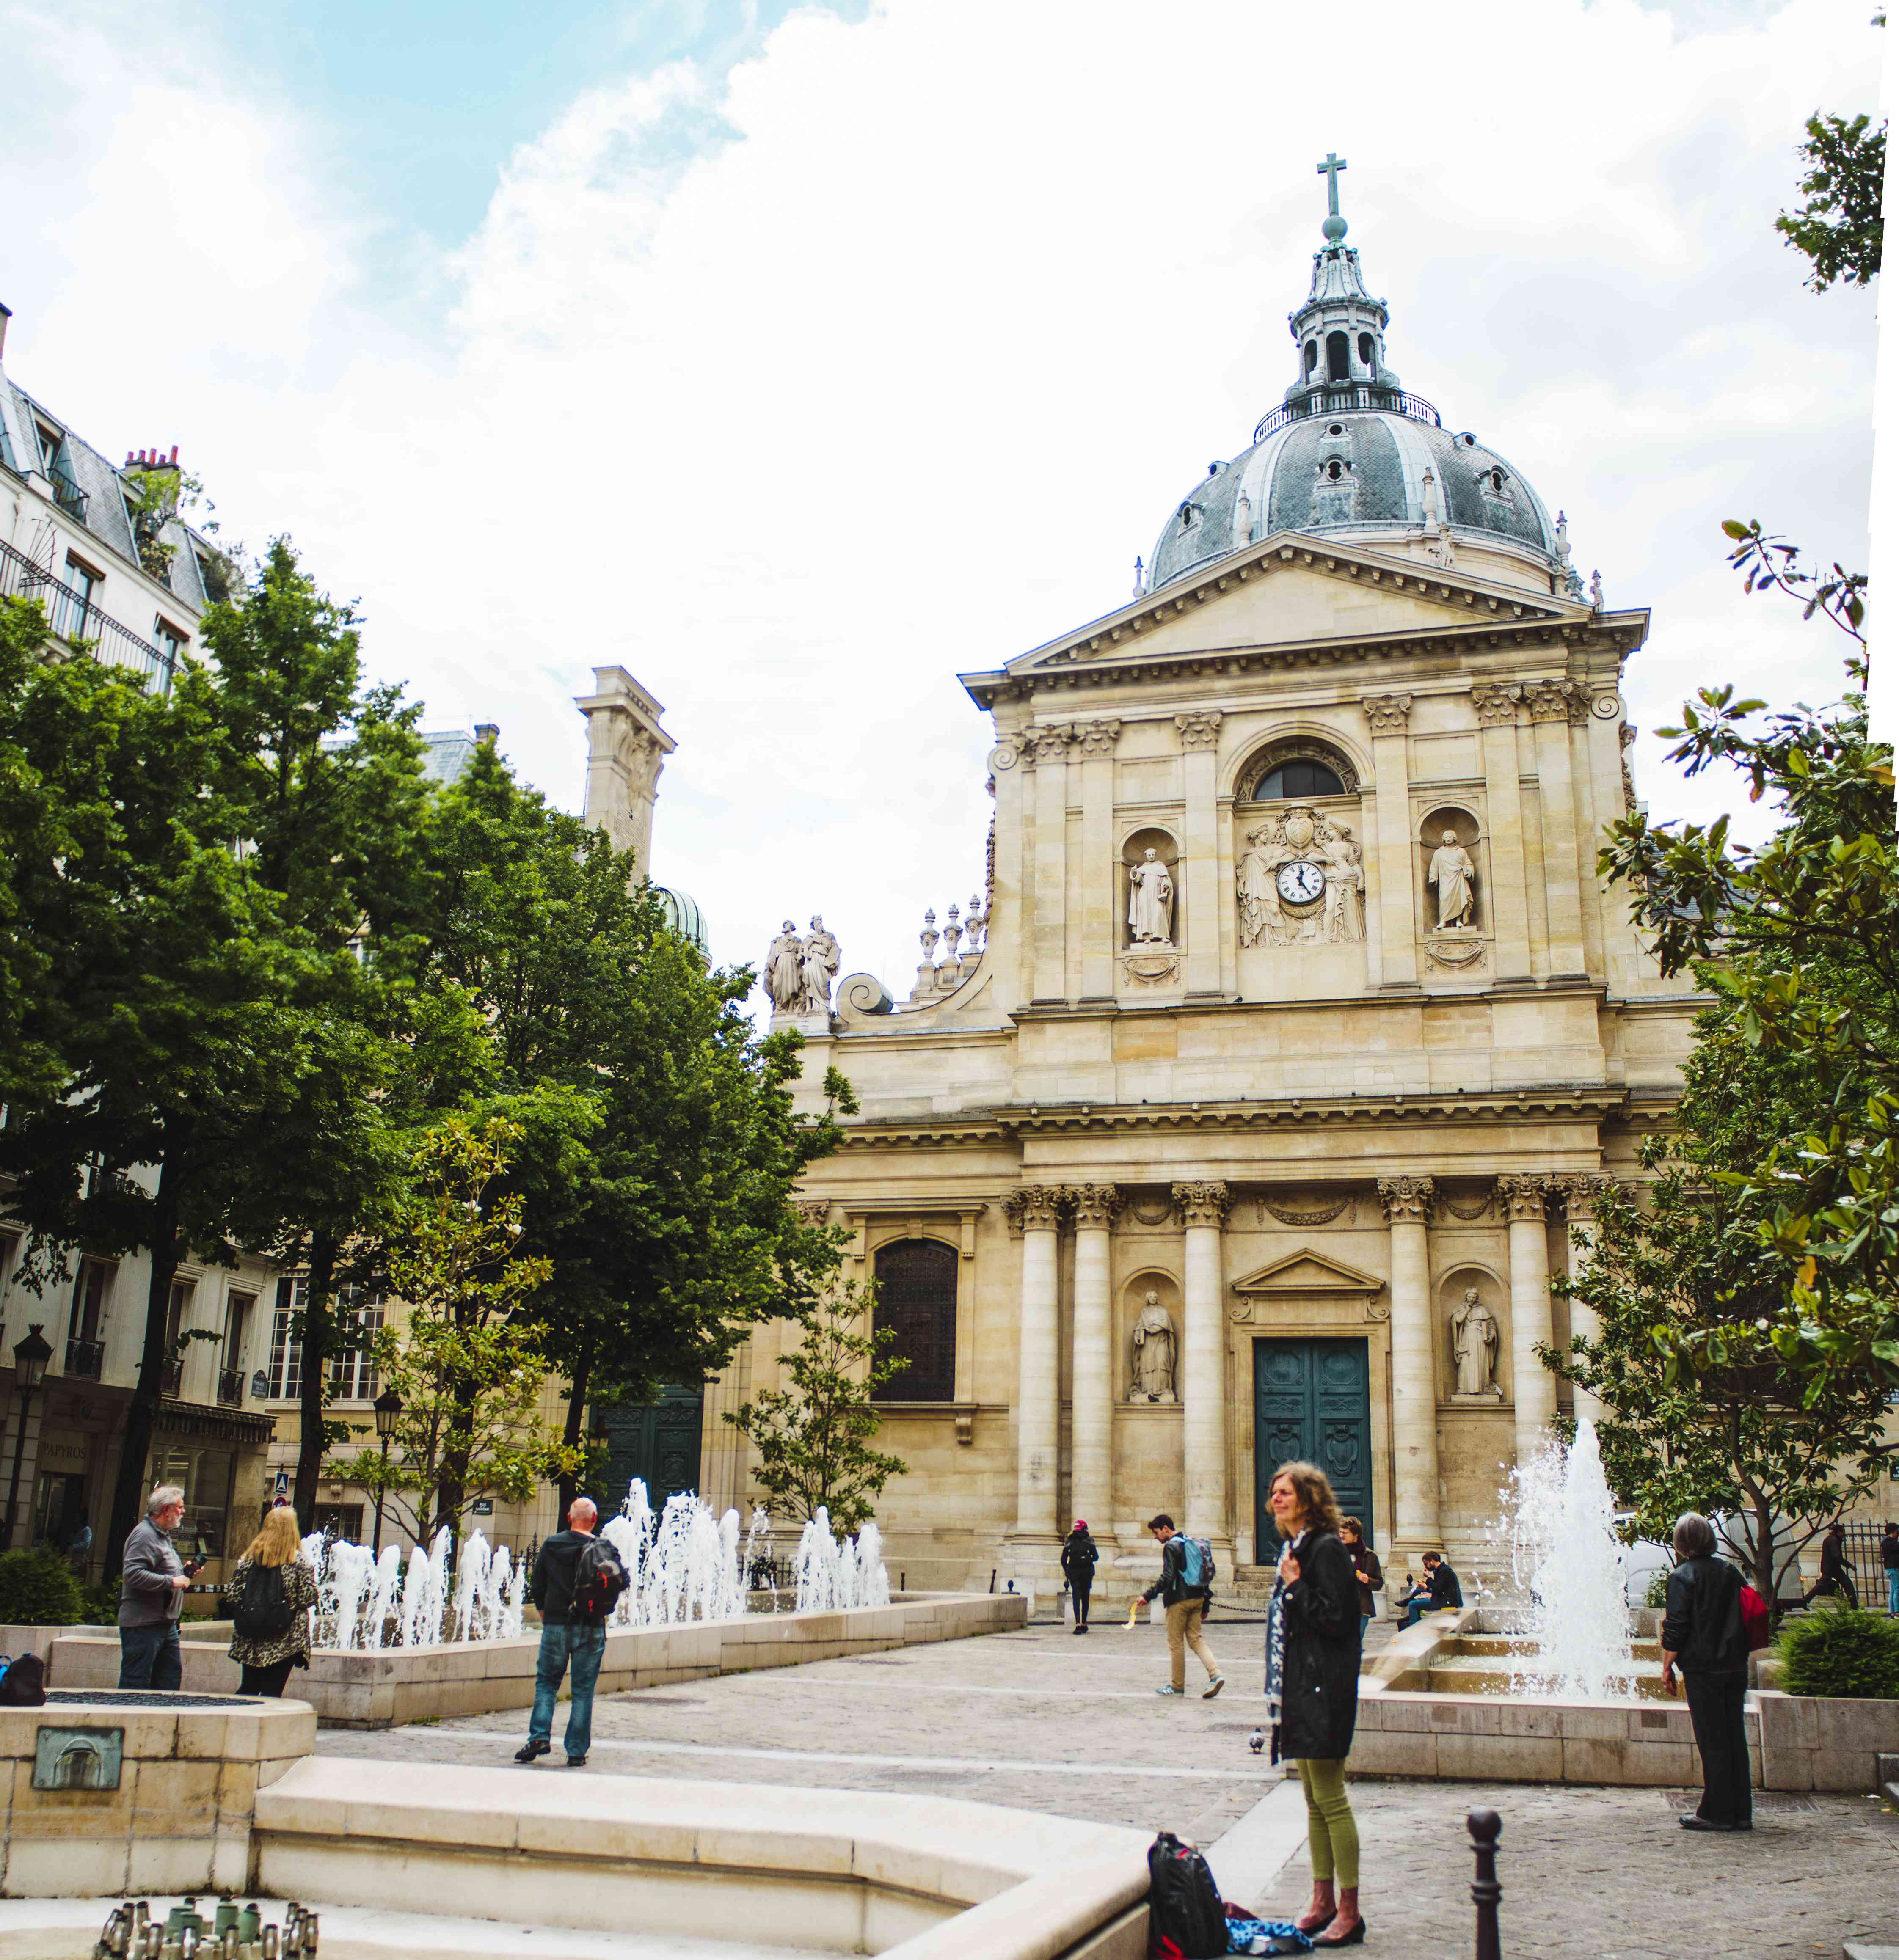 The fountains in front of the Sorbonne University